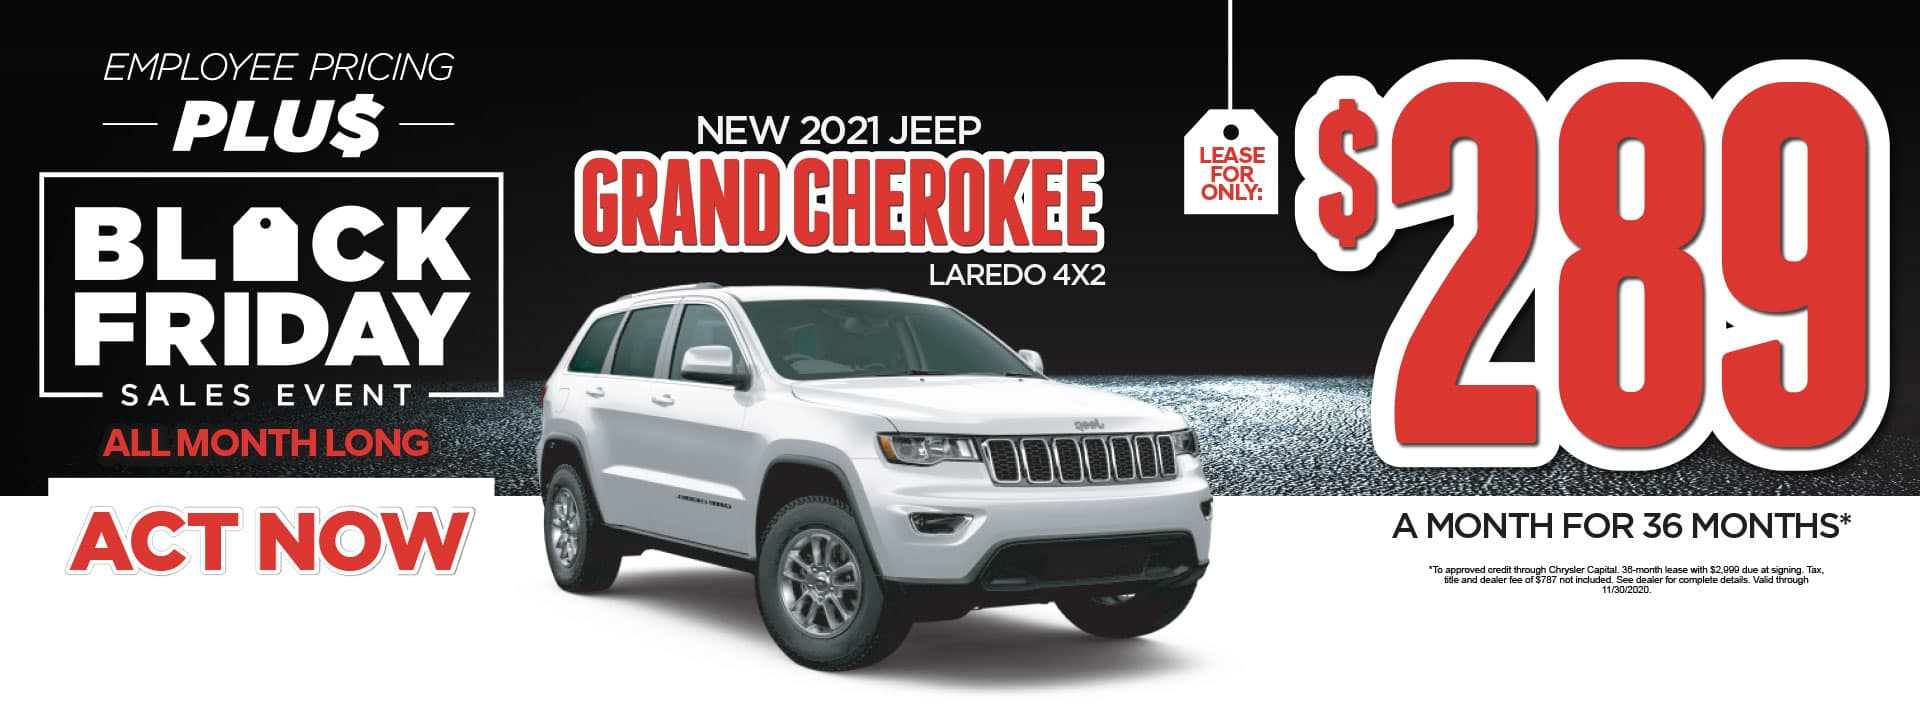 New 2021 Jeep Grand Cherokee Laredo 4x2 lease for only $289/Mo* Act Now